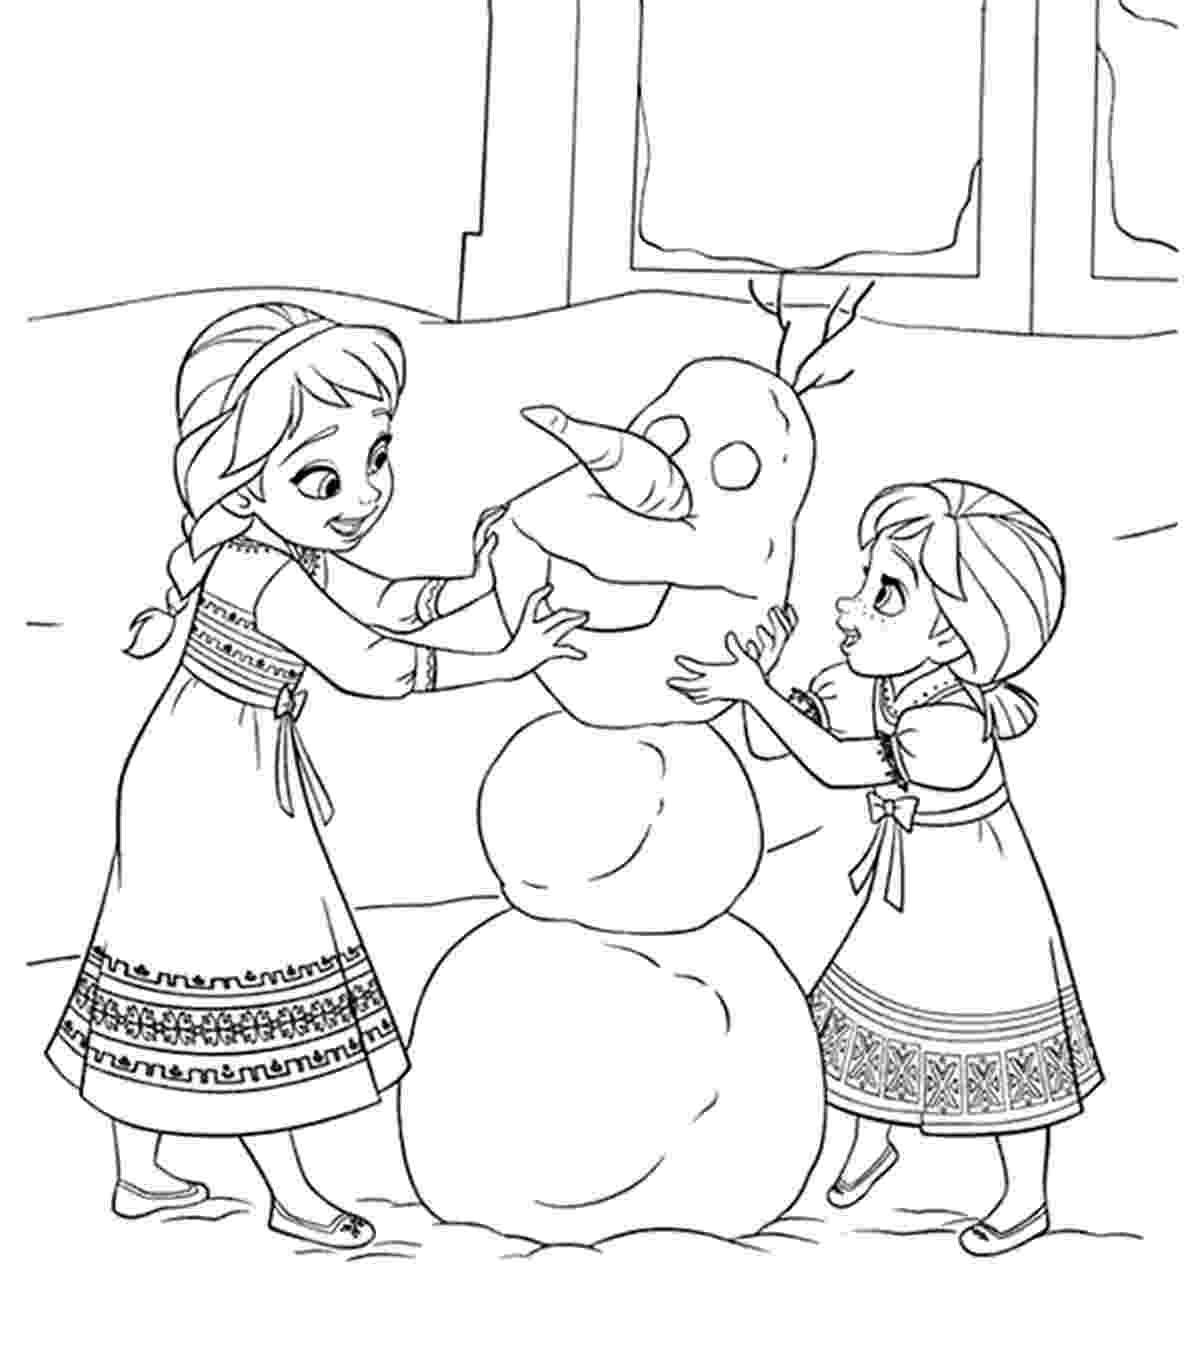 coloring pages printable frozen 15 beautiful disney frozen coloring pages free instant pages coloring printable frozen